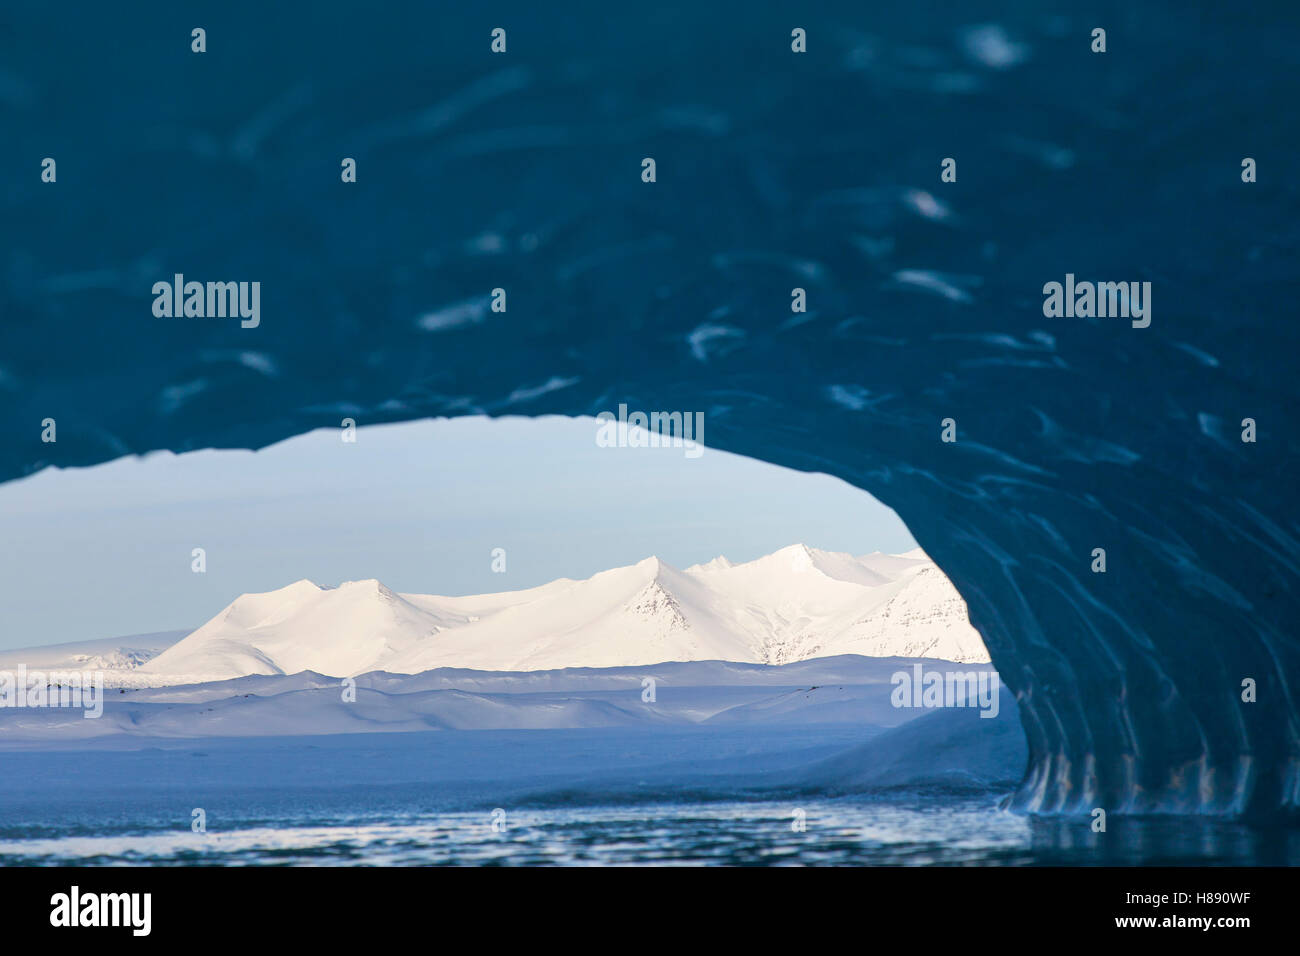 View from ice cave over the Fjallsárlón Glacier Lagoon, glacial lake in winter, Iceland - Stock Image